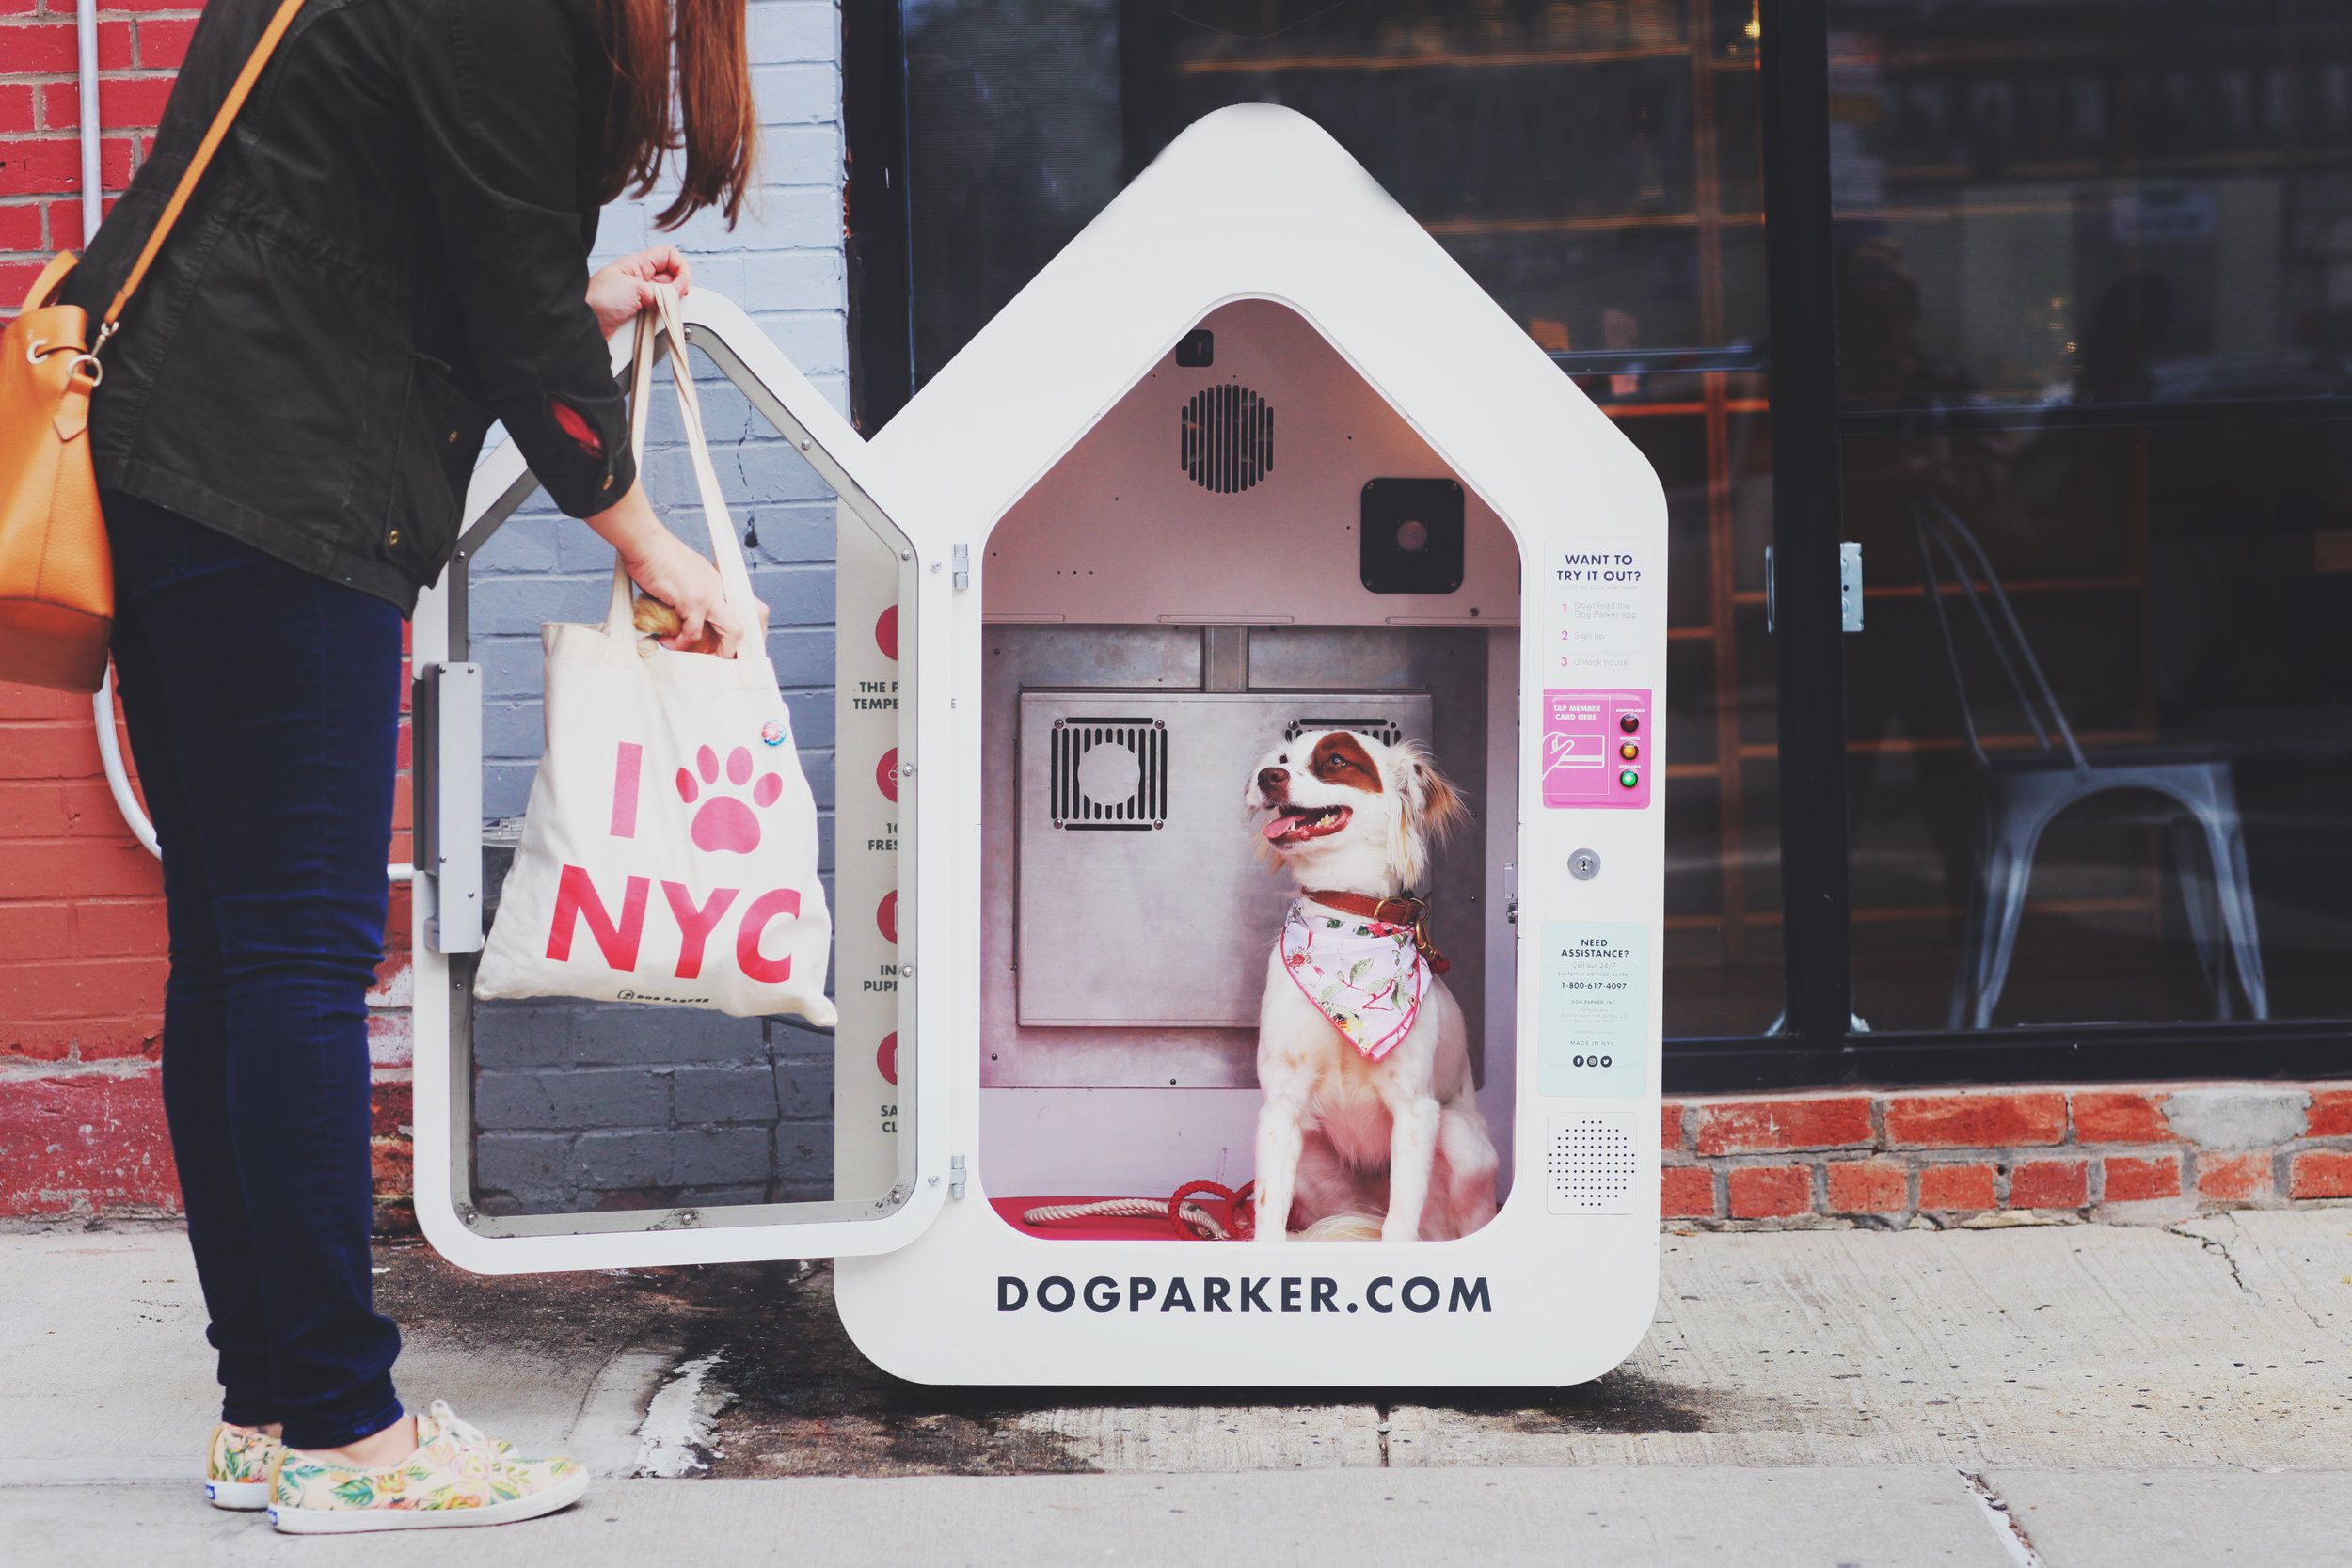 Dog Parker Cabin To Safely Leave Your Dog While You Shop Go For